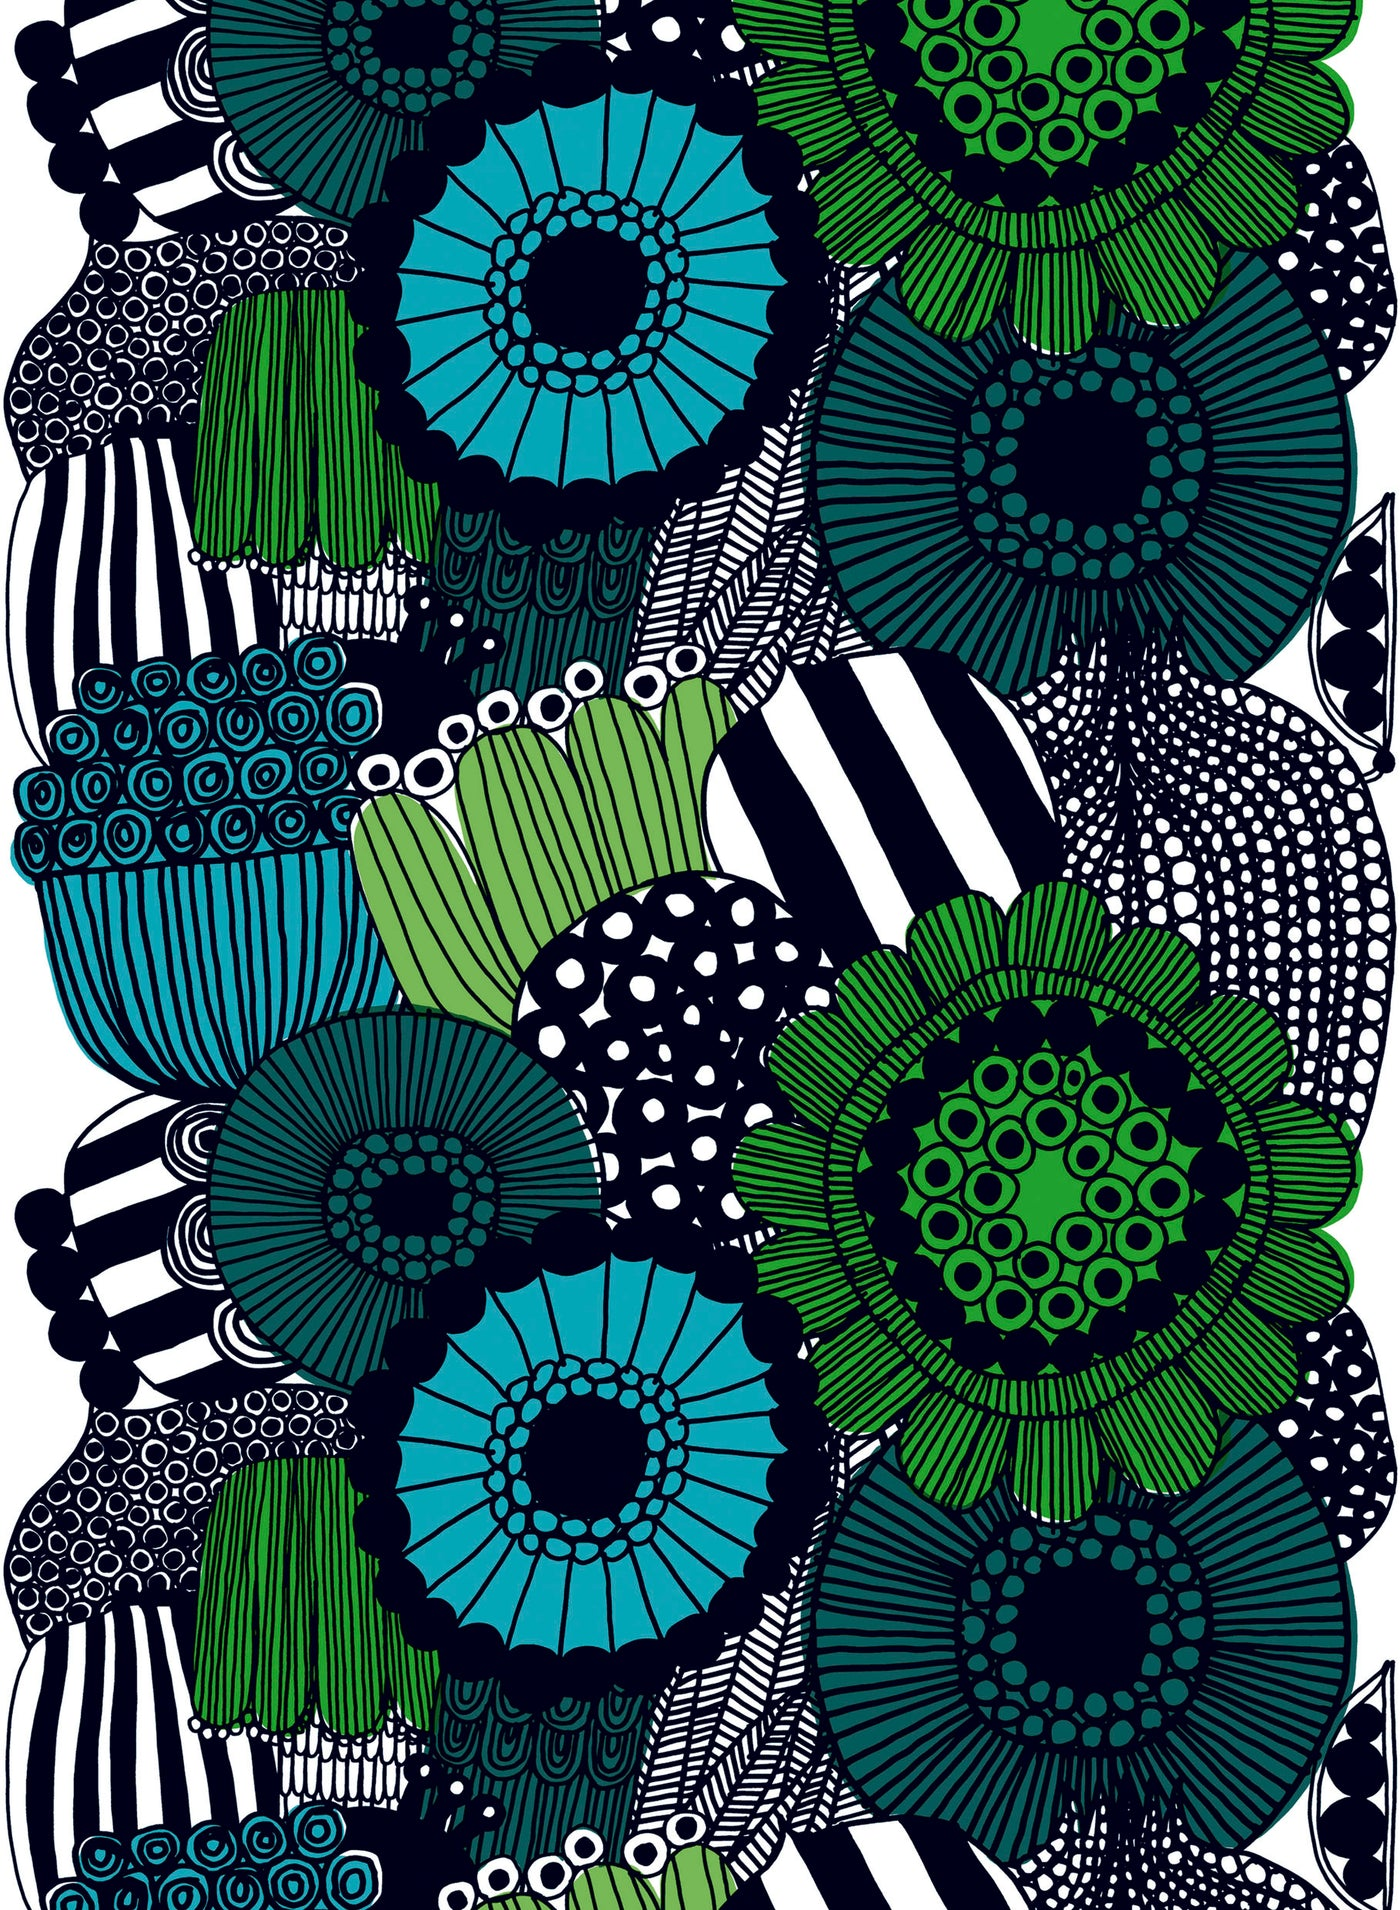 Marimekko 100% Cotton Fabric - Siirtolapuutarha (Black, White, Green)